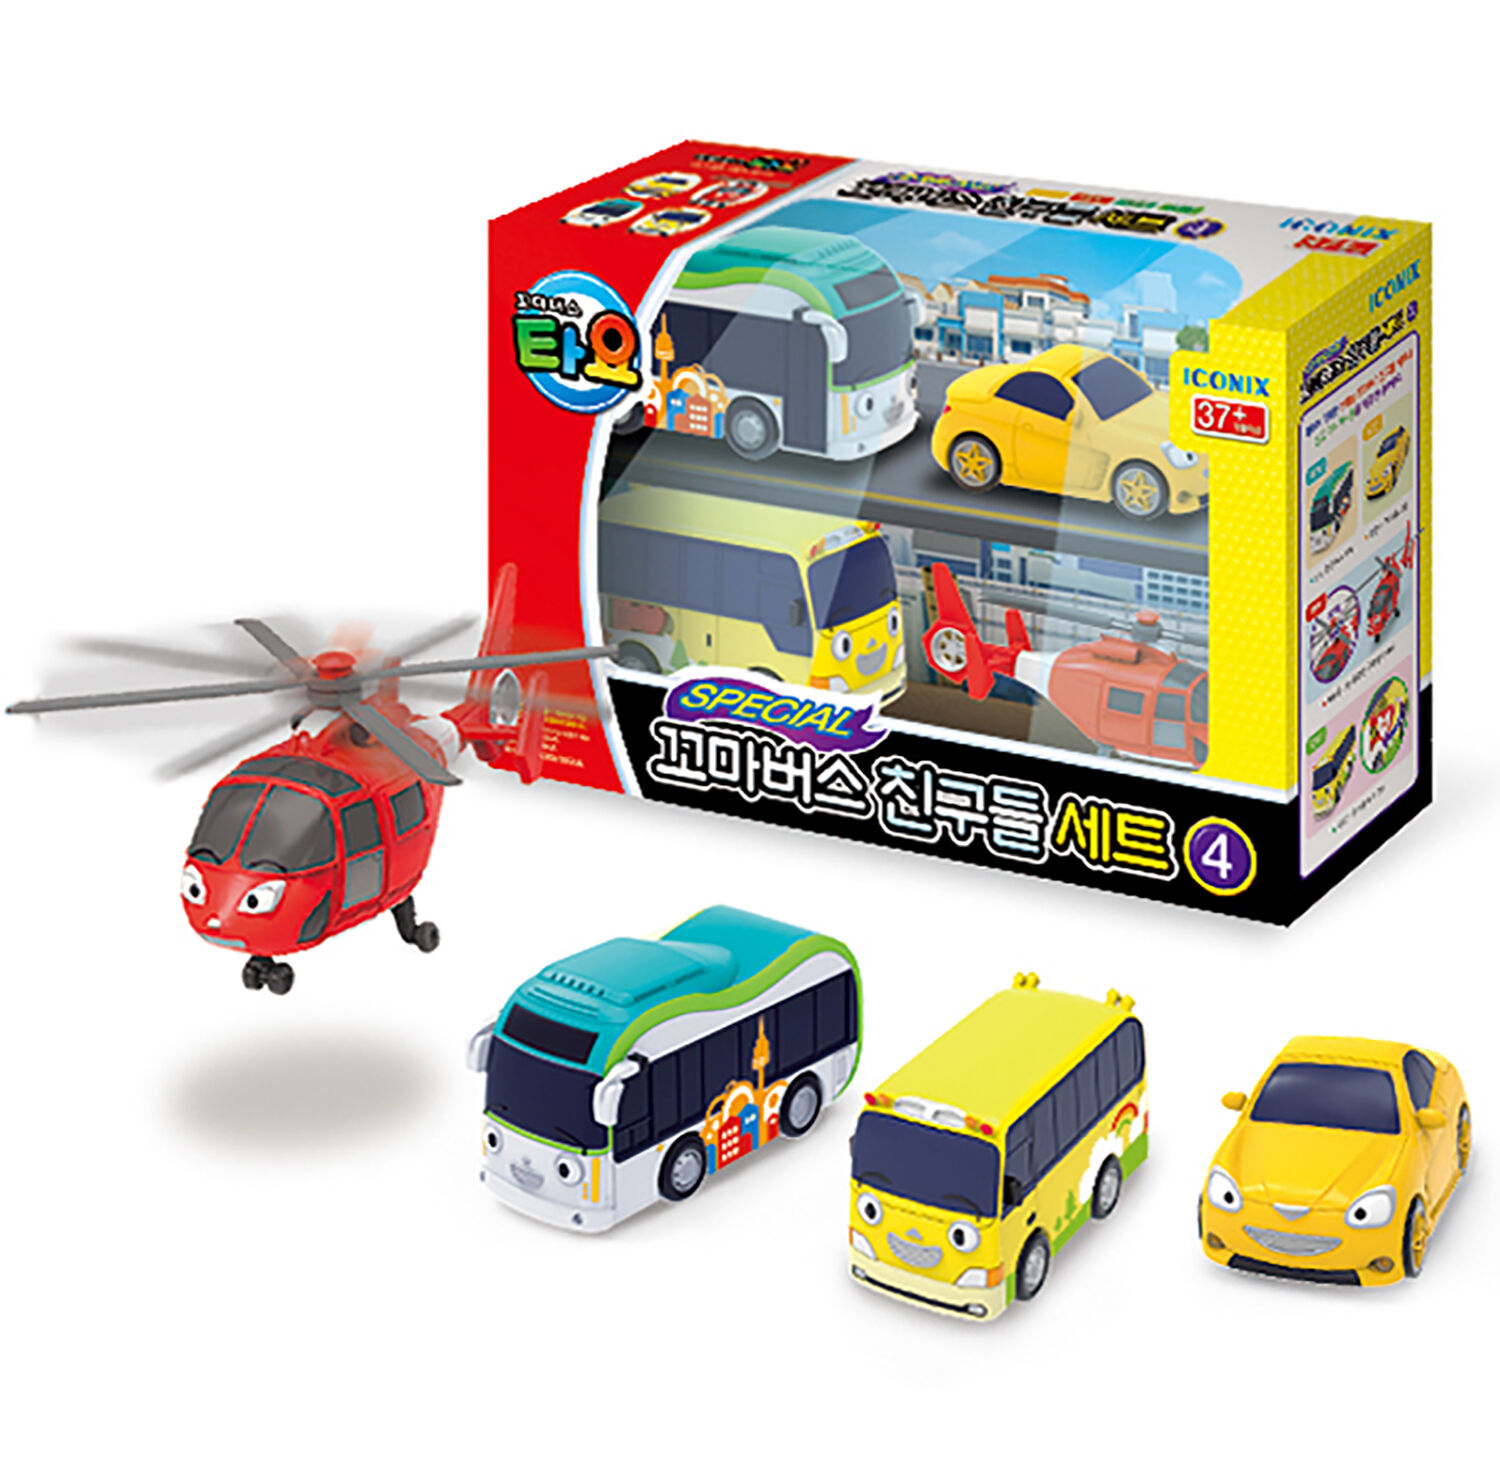 TAYO the Little Bus Special Friends Mini 4 Cars D Set Toy